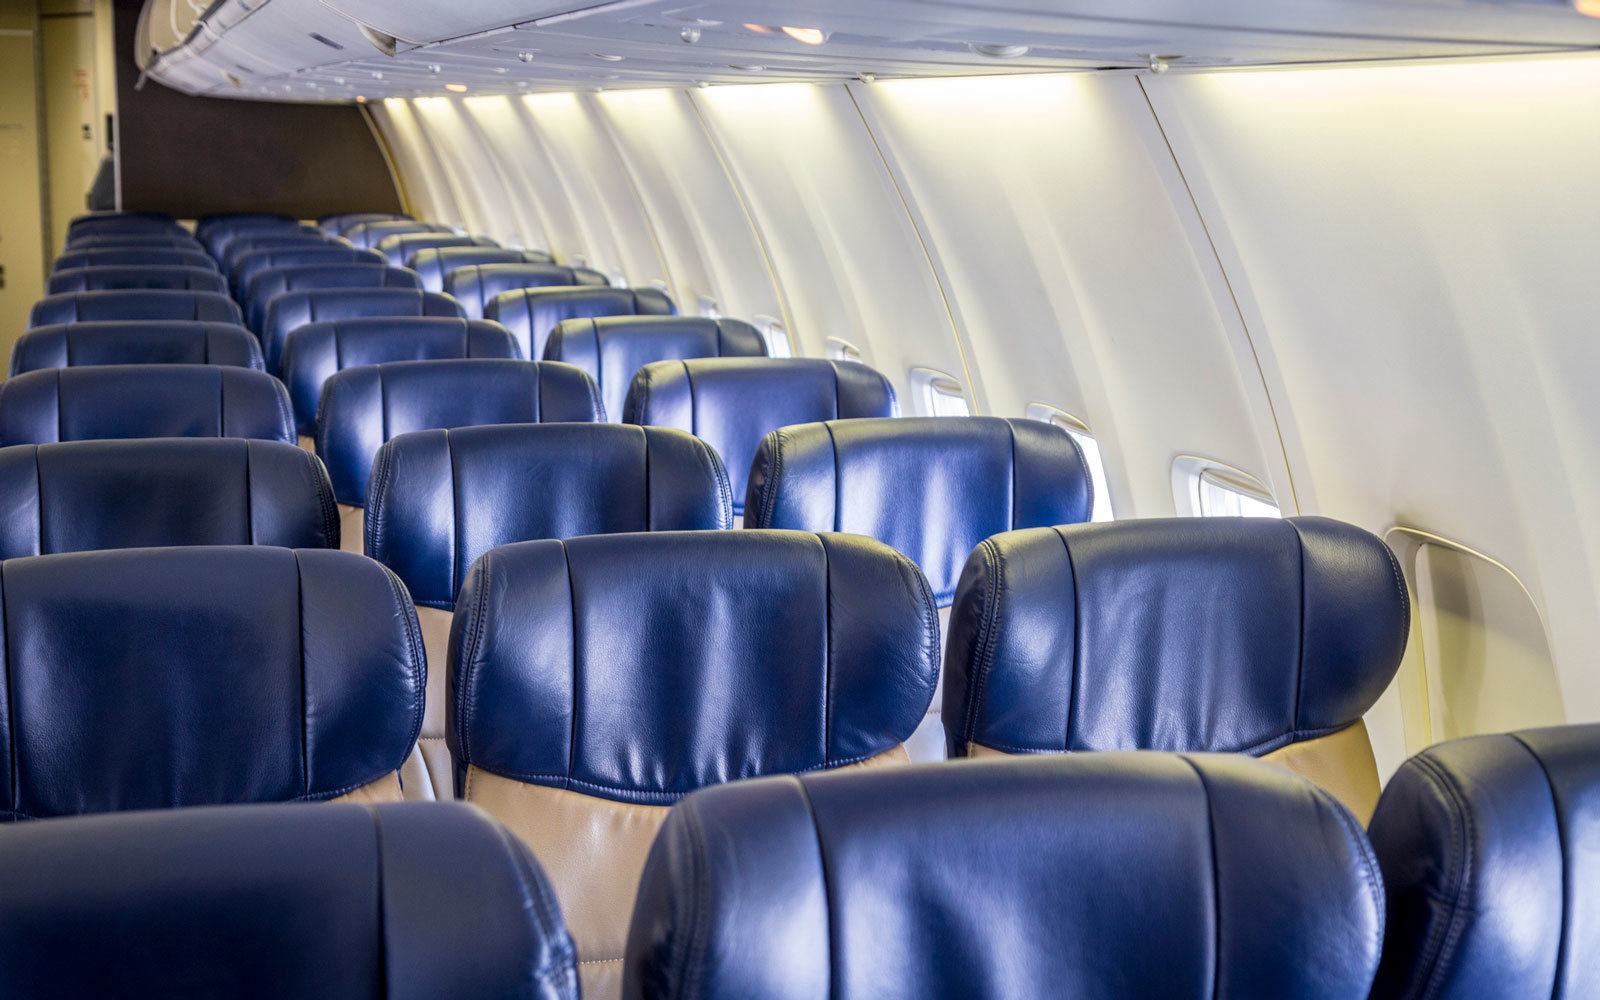 This aircraft seat manufacturer has an idea for making the middle seat better.